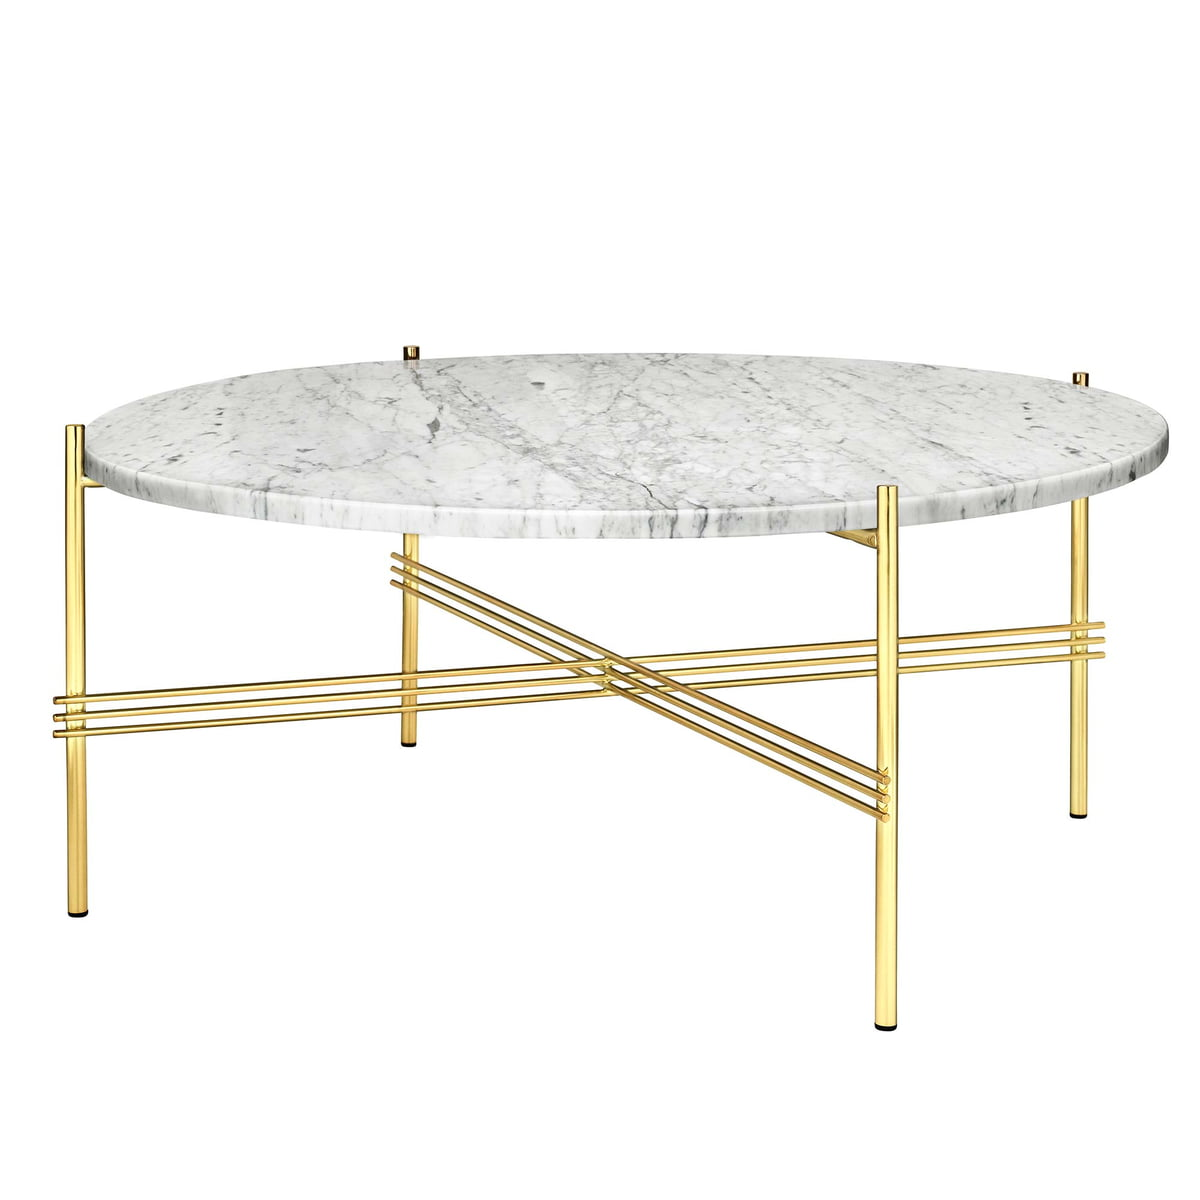 Ts coffee table by gubi connox shop for Table basse marbre